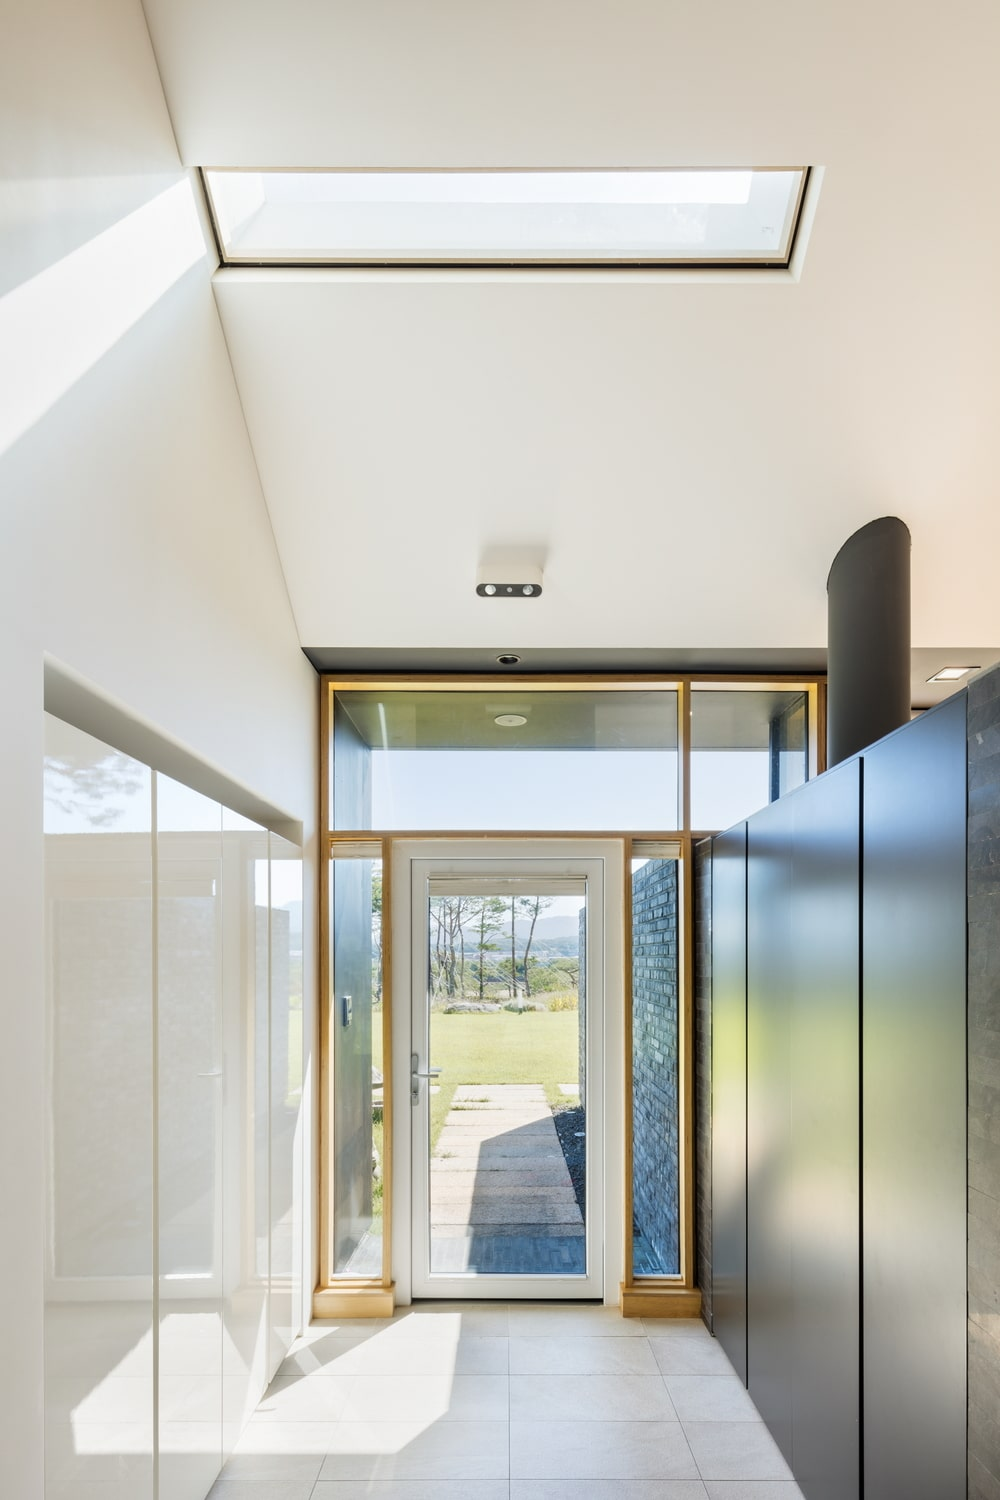 Upon entry of the house, you are welcomed by this simple foyer that has bright walls and arched ceiling brightened by the natural lights of the glass door.